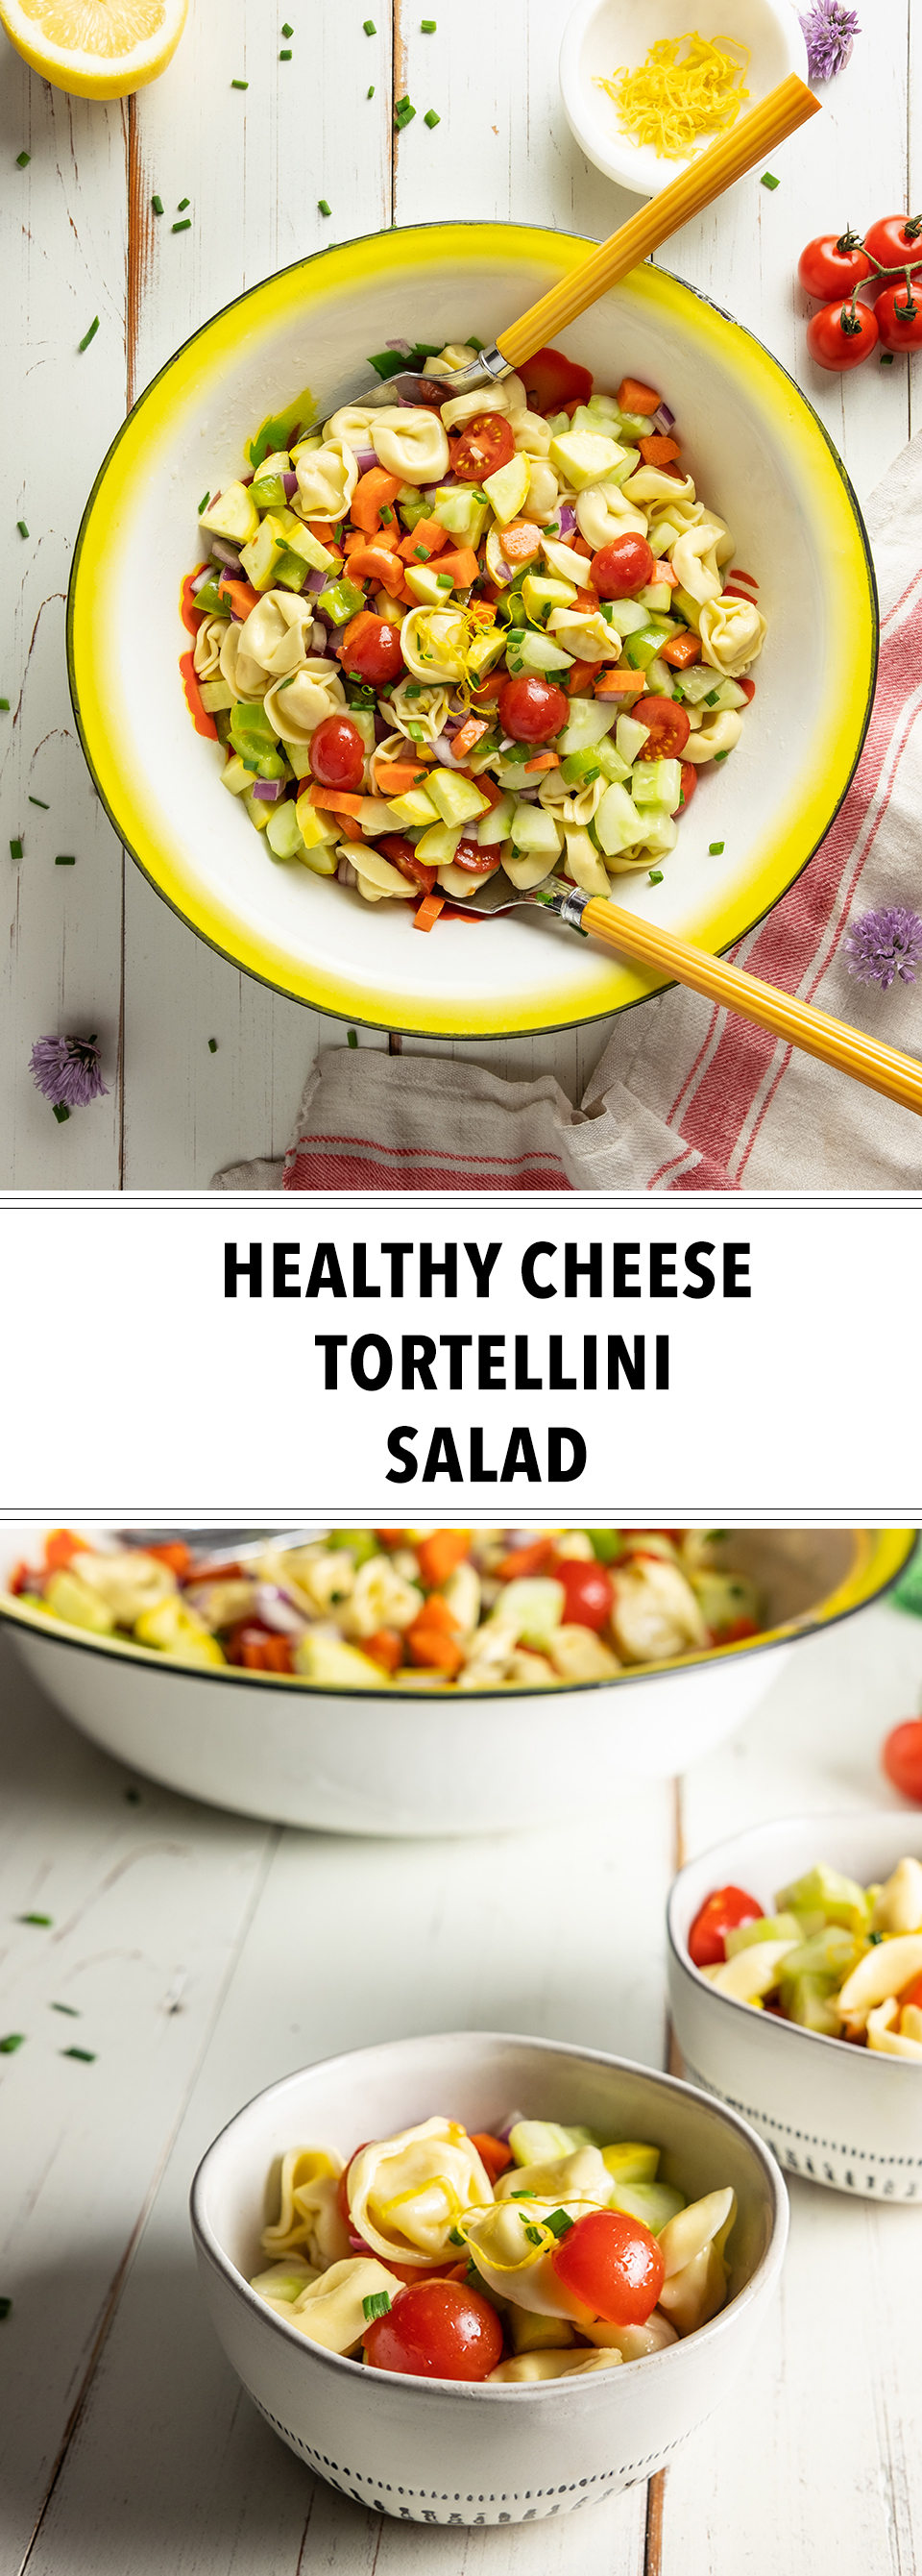 JodiLoves_Retouching_Brilliant_Pixel_Imaging-Cheese-Tortellini-Salad.jpg